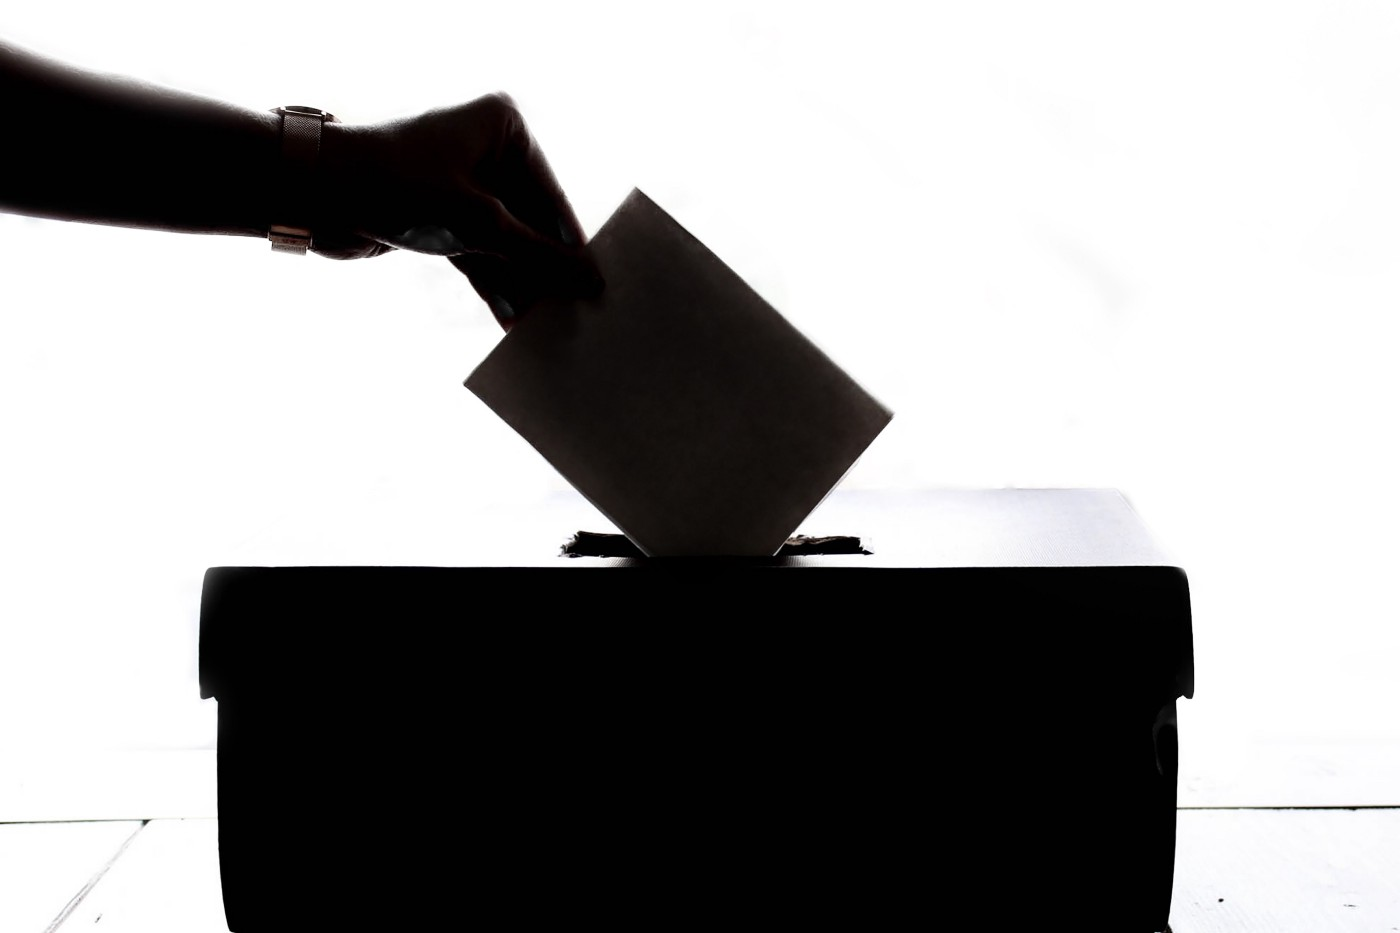 Silhouette of a voter posting their ballot in a ballot box